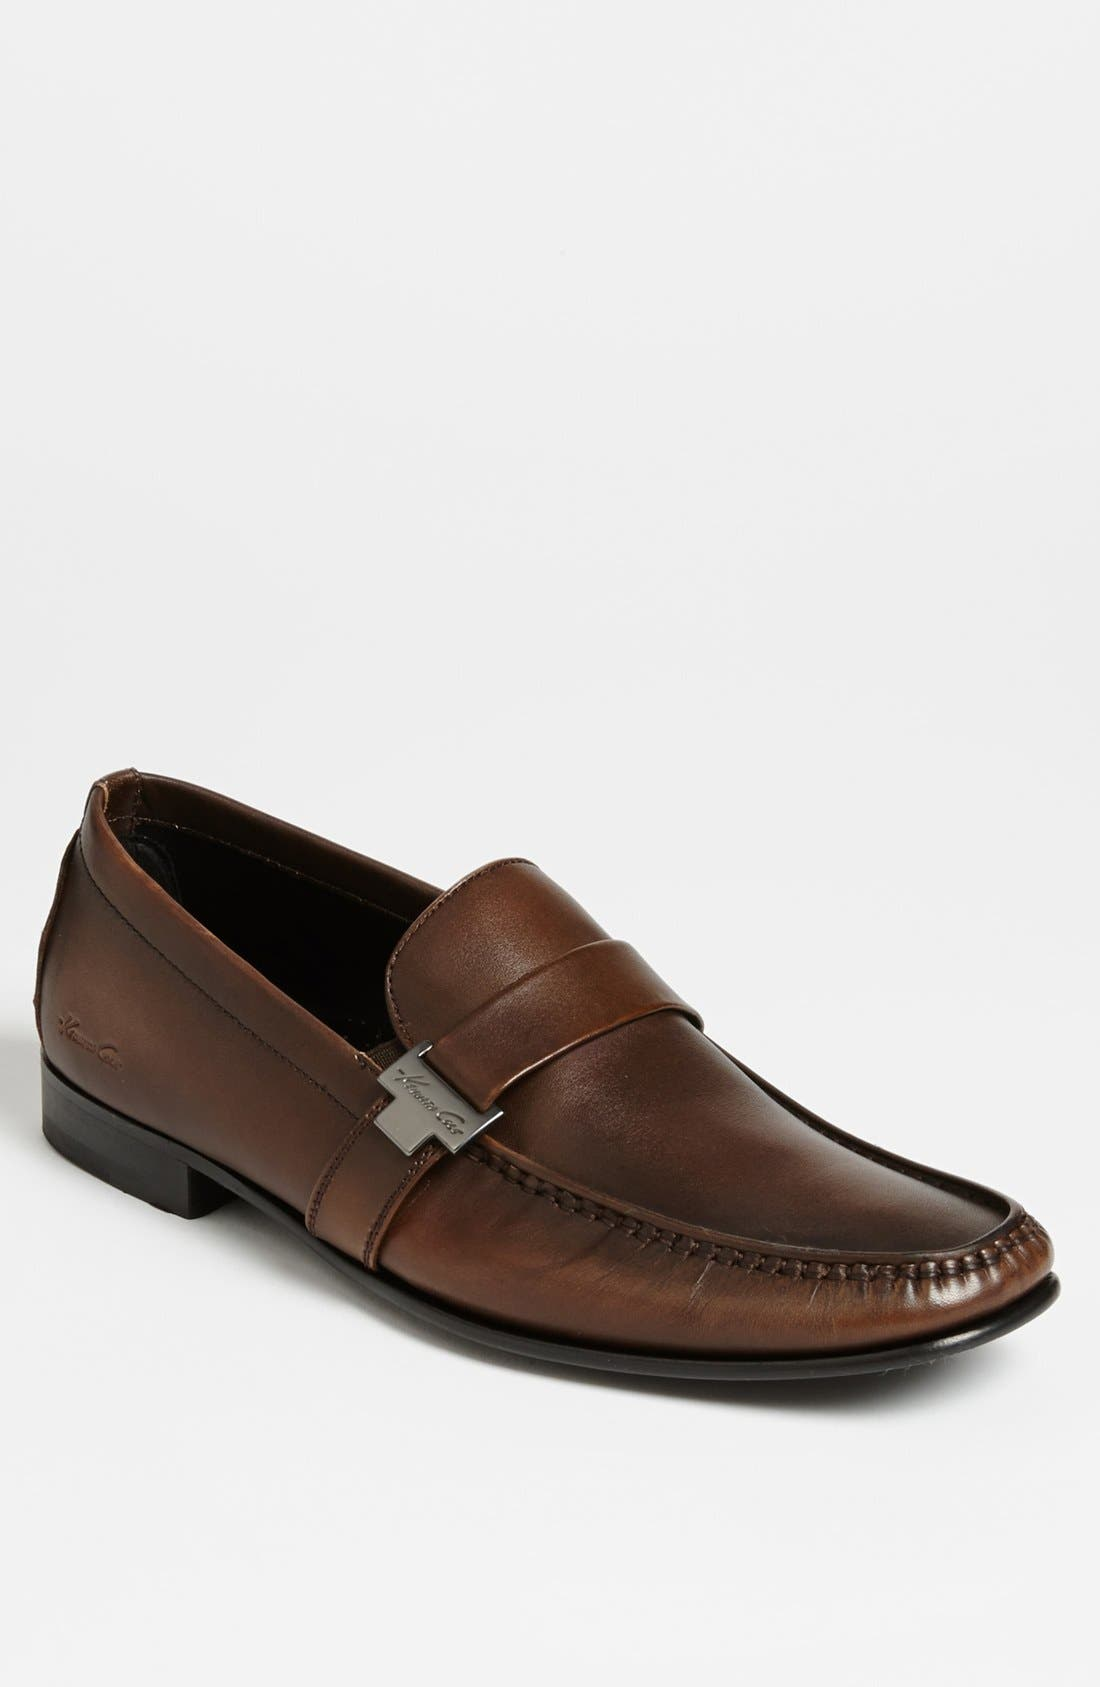 Main Image - Kenneth Cole New York 'Florence' Loafer